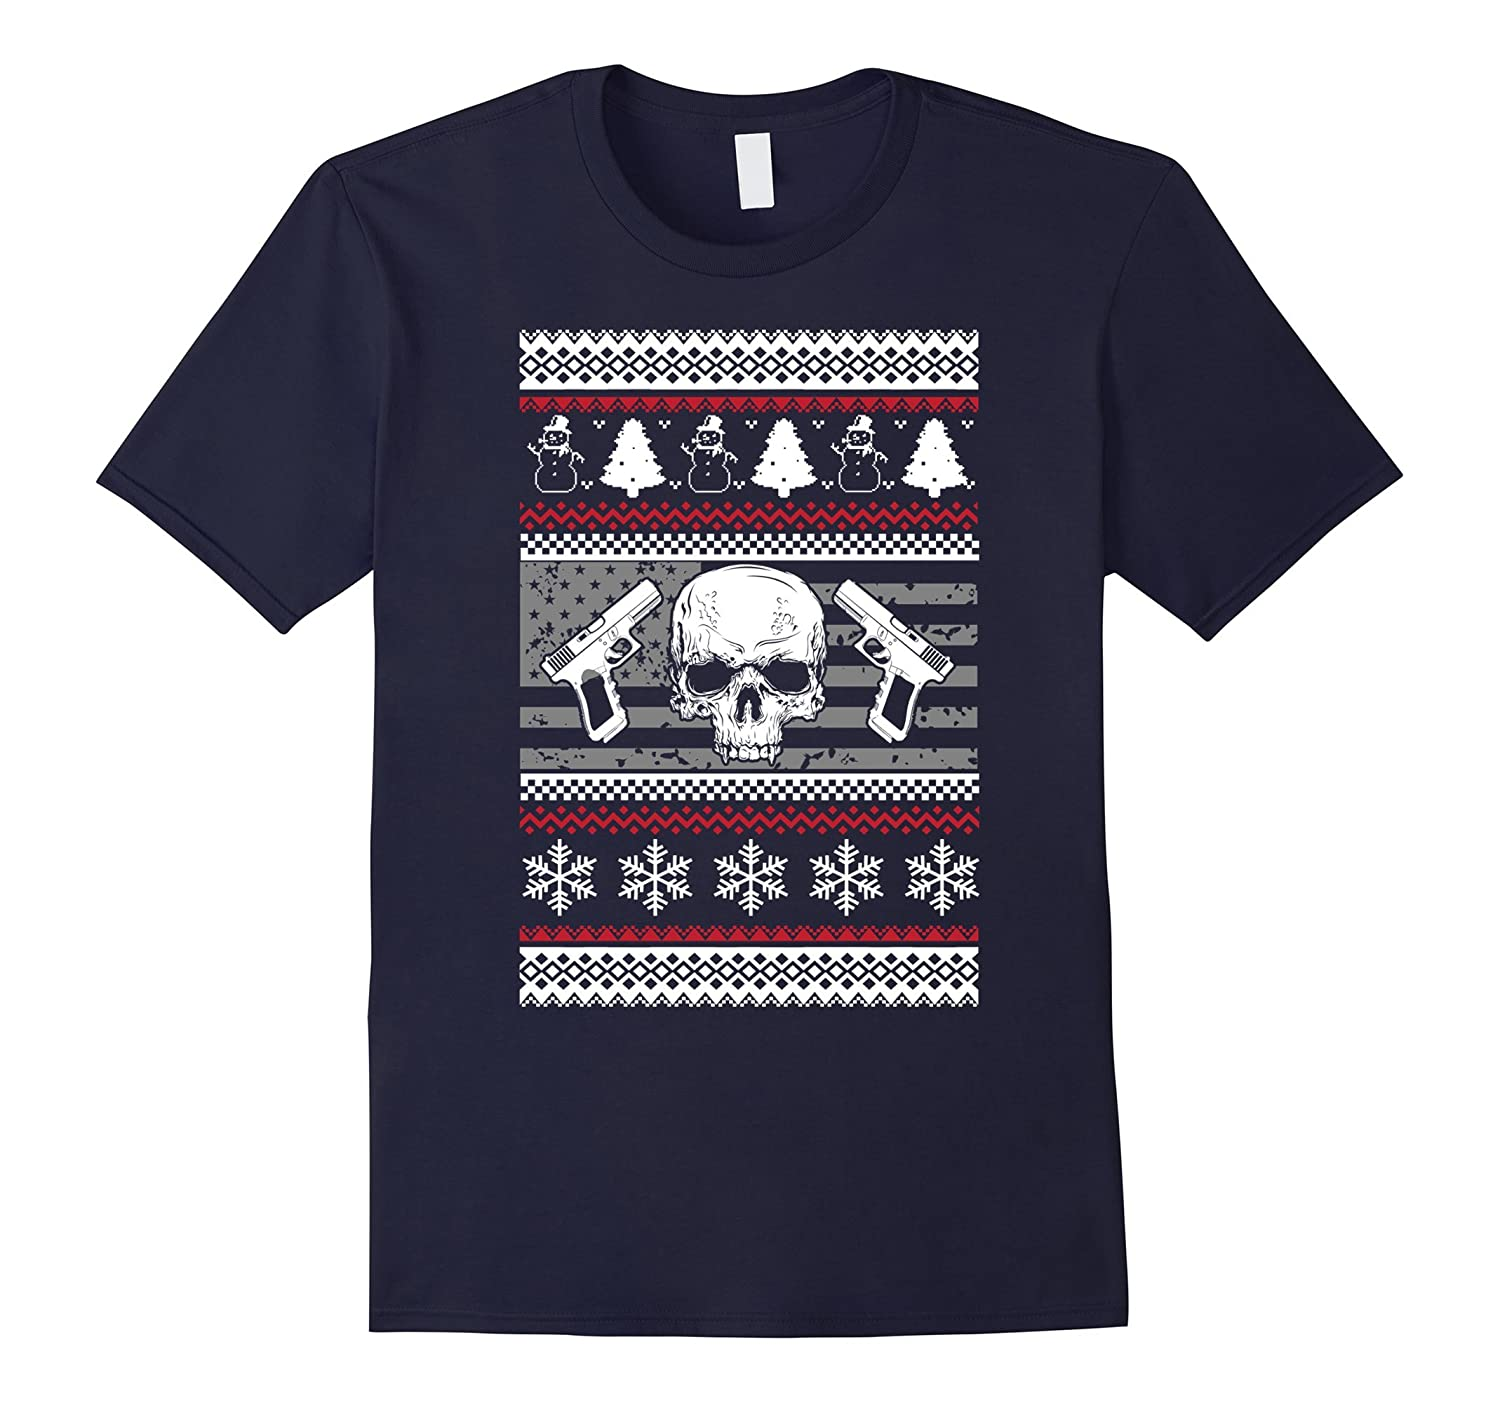 2nd Amendment Ugly Christmas Sweater Style Shirt Xmas Guns-Art